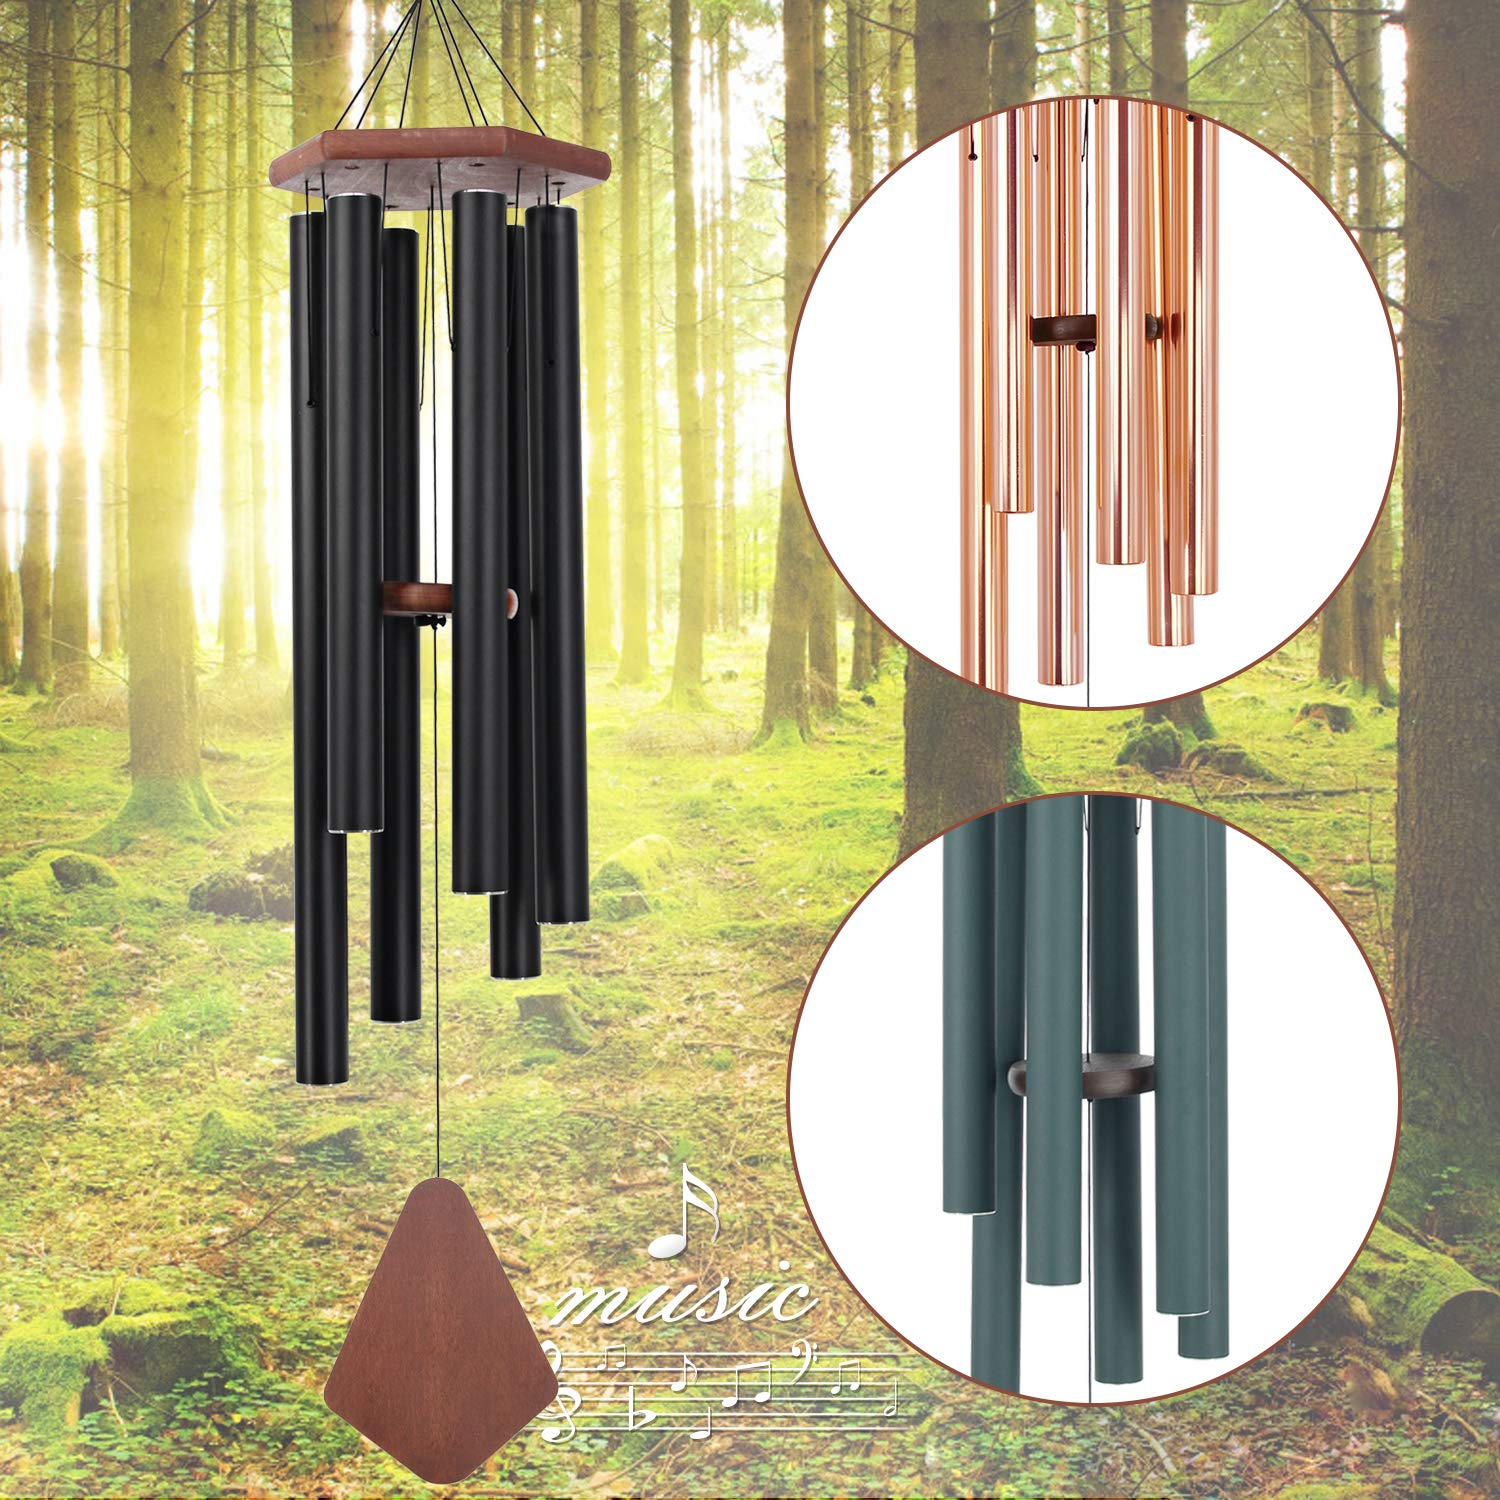 Wind Chimes Outdoor Large Deep Tone, 44 Inch Sympathy Wind Chime Amazing Grace Outdoor, Memorial Wind-Chime with 6 Tuned Tubes, Elegant Chime for Garden, Patio, Balcony and Home Decor, Matte Black by Astarin (Image #1)